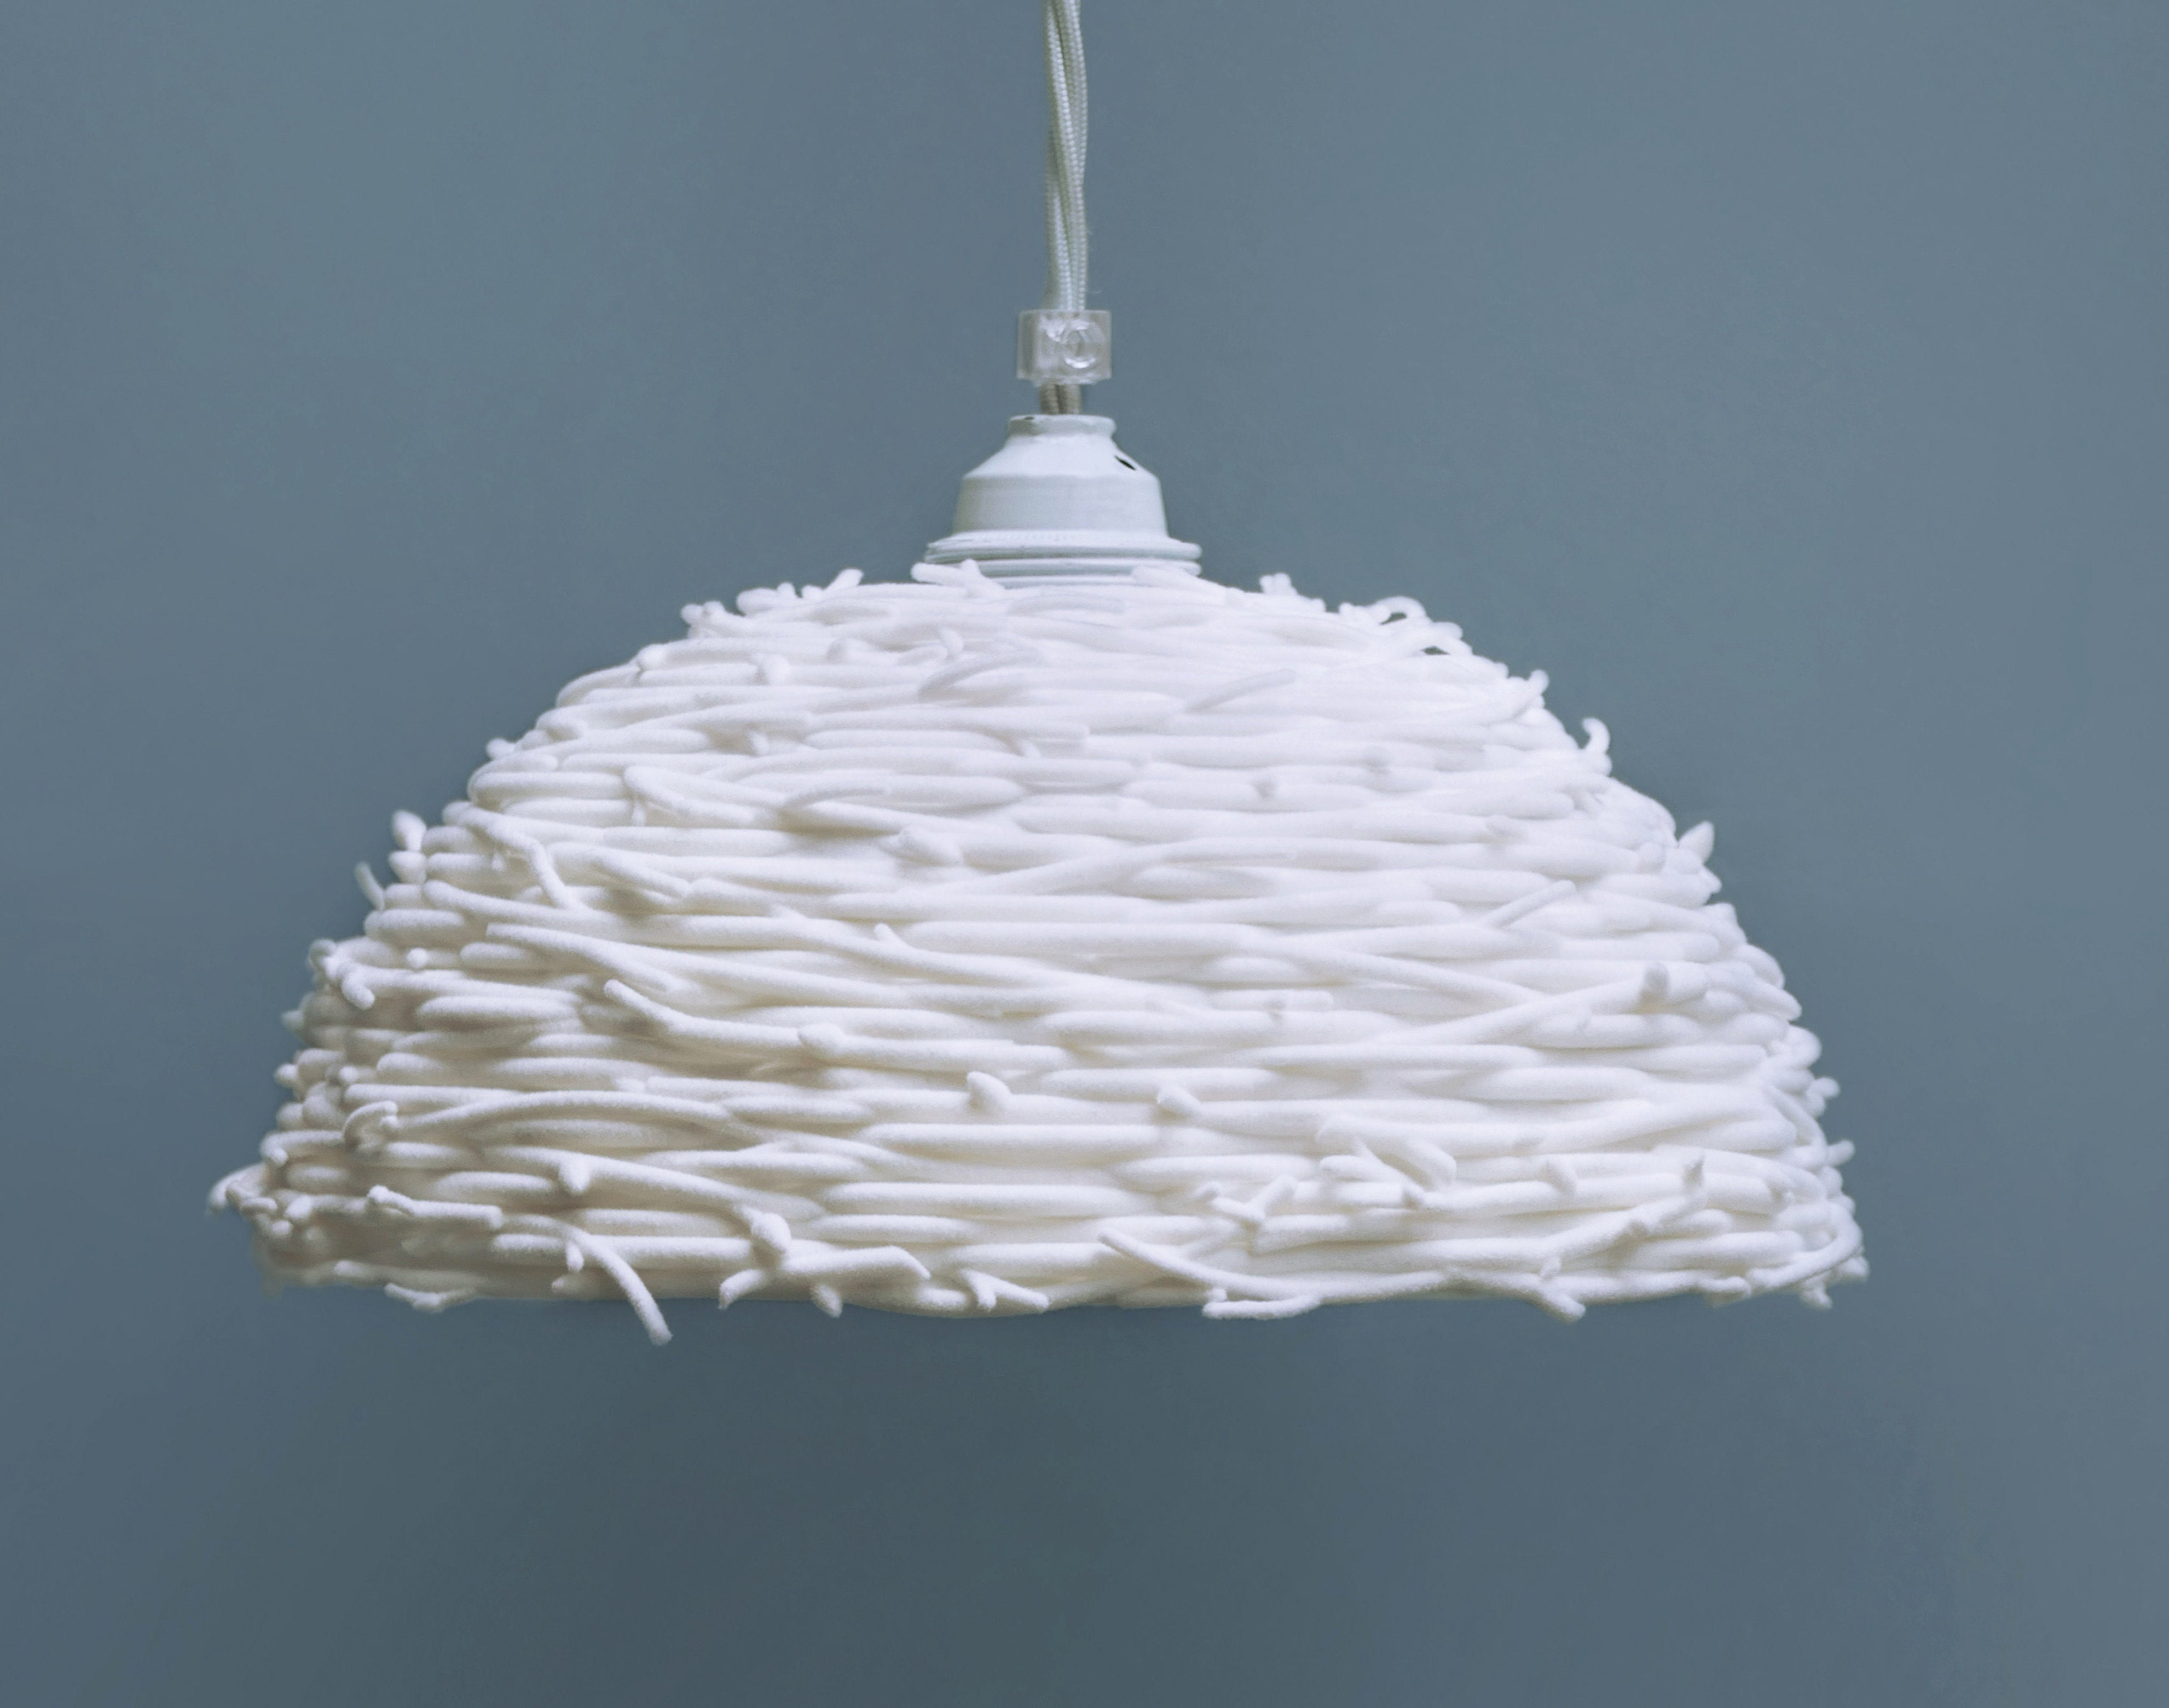 3D printed Nest lampshade